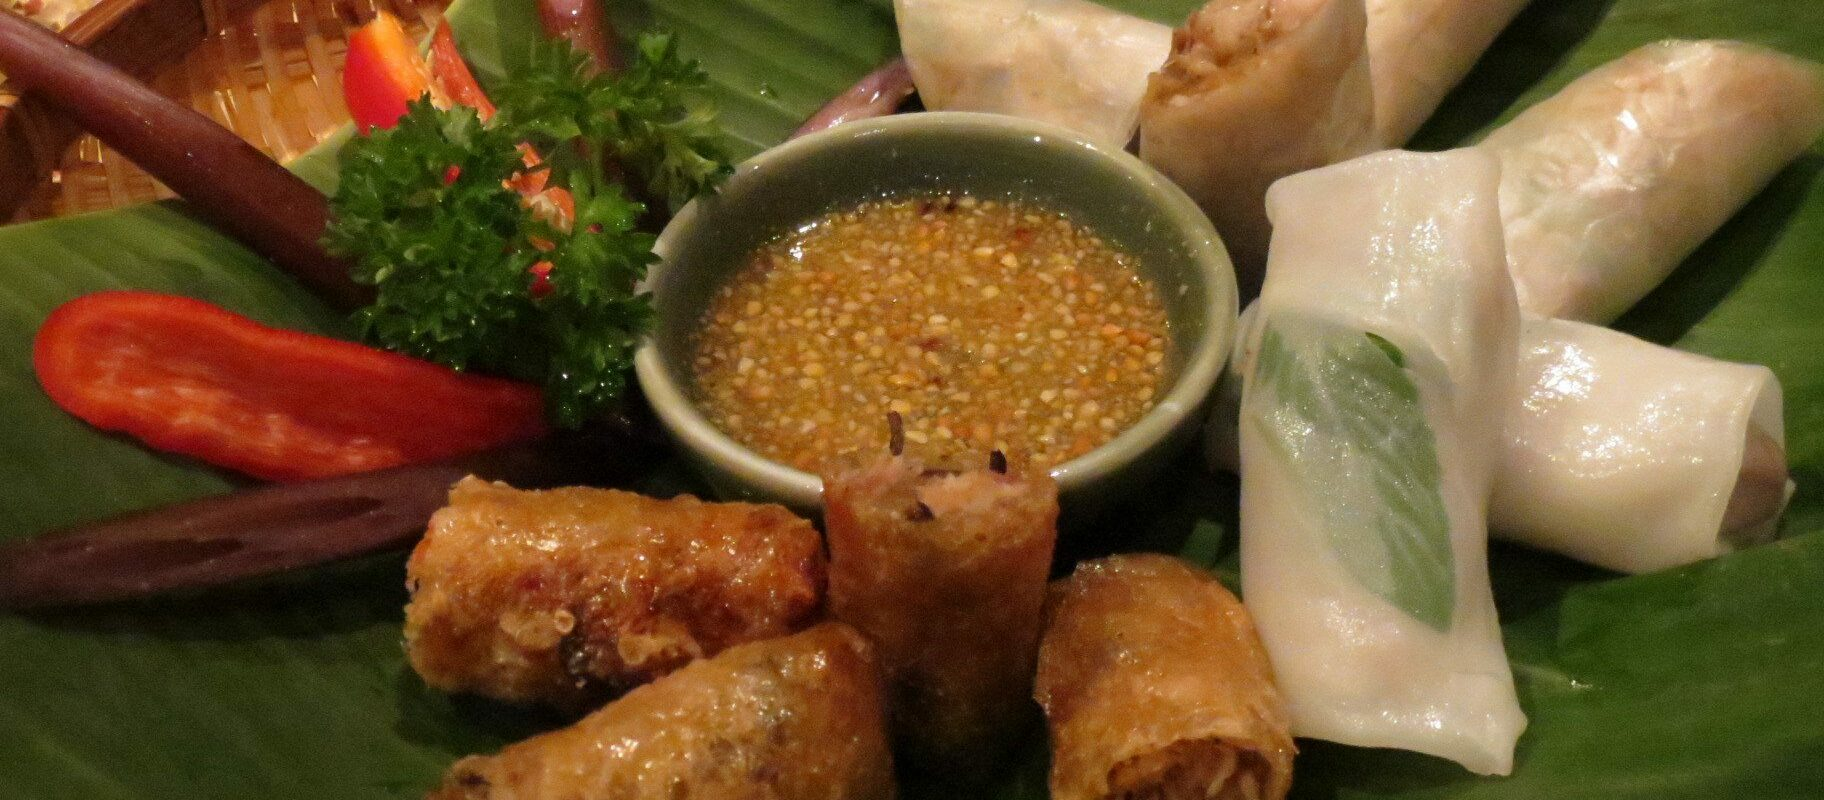 Second starter: fried and fresh spring rolls